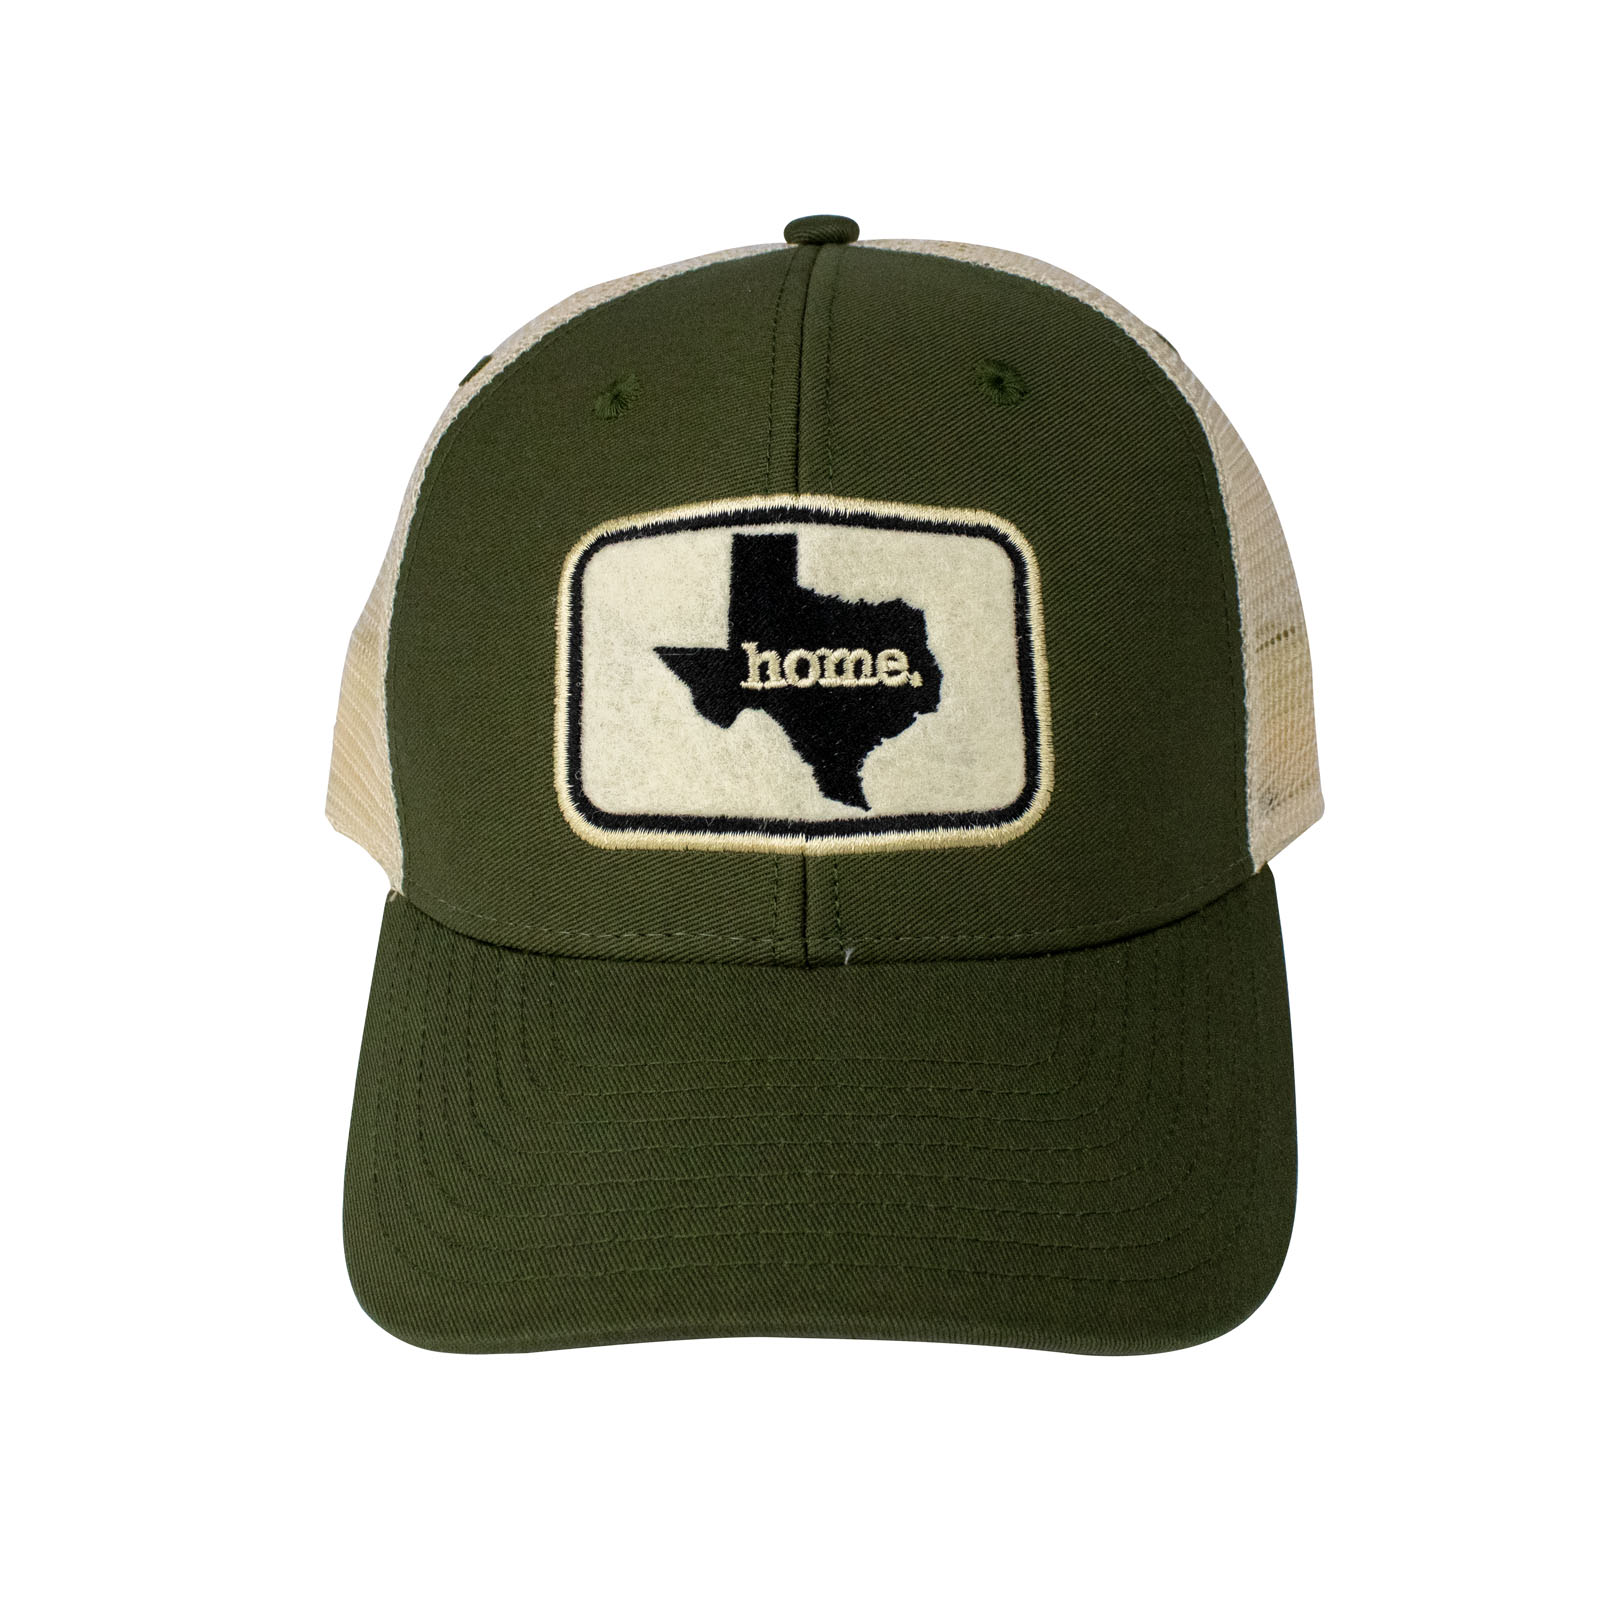 Home Texas Olive Green Trucker Hat